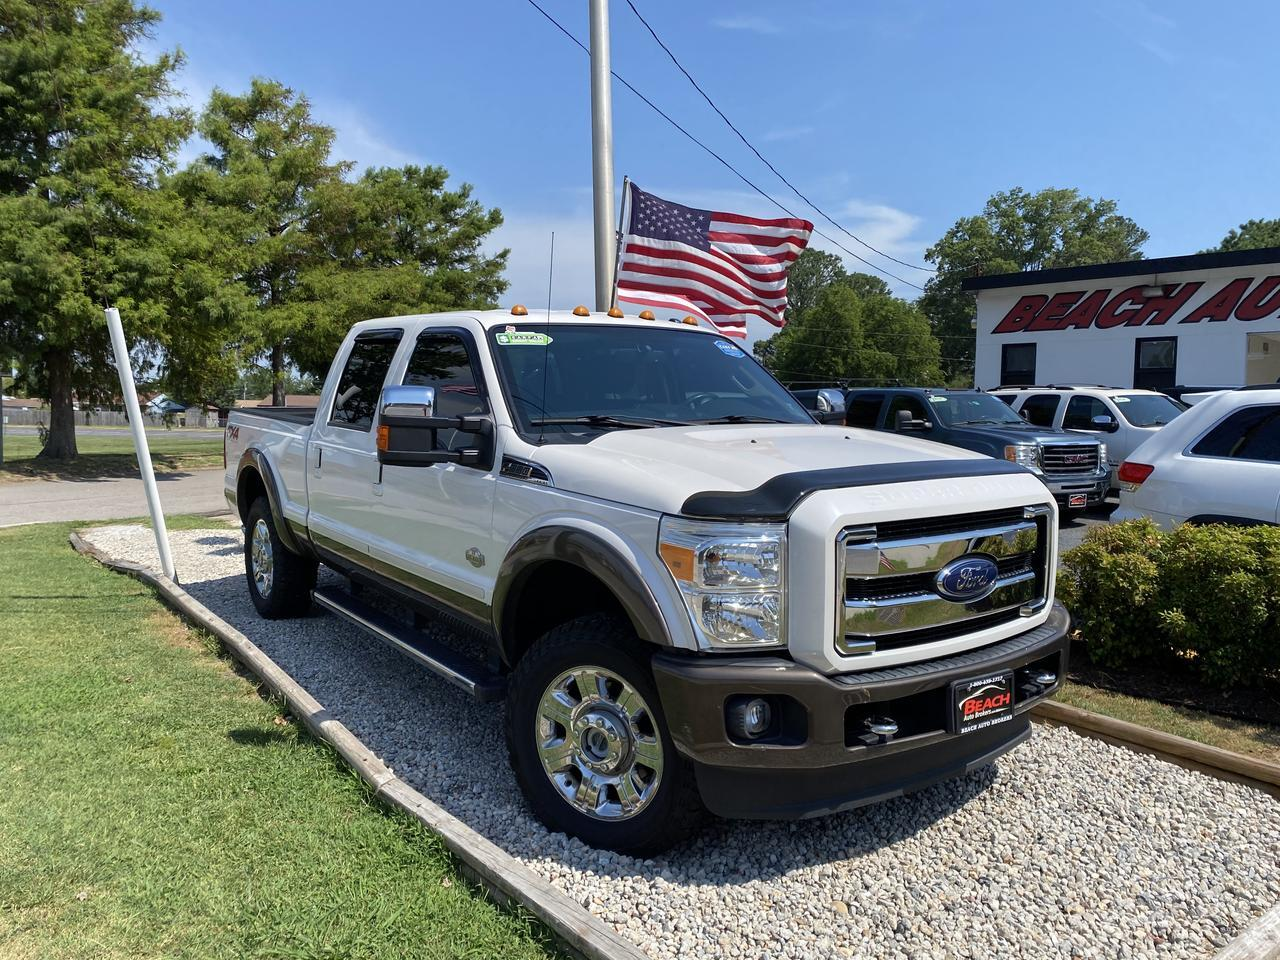 2016 FORD F-250 LARIAT CREW CAB 4X4, WARRANY, LIFTED, LEATHER, KING RANCH, TOW PKG, NAV, BLUETOOTH, CLEAN CARFAX! Norfolk VA